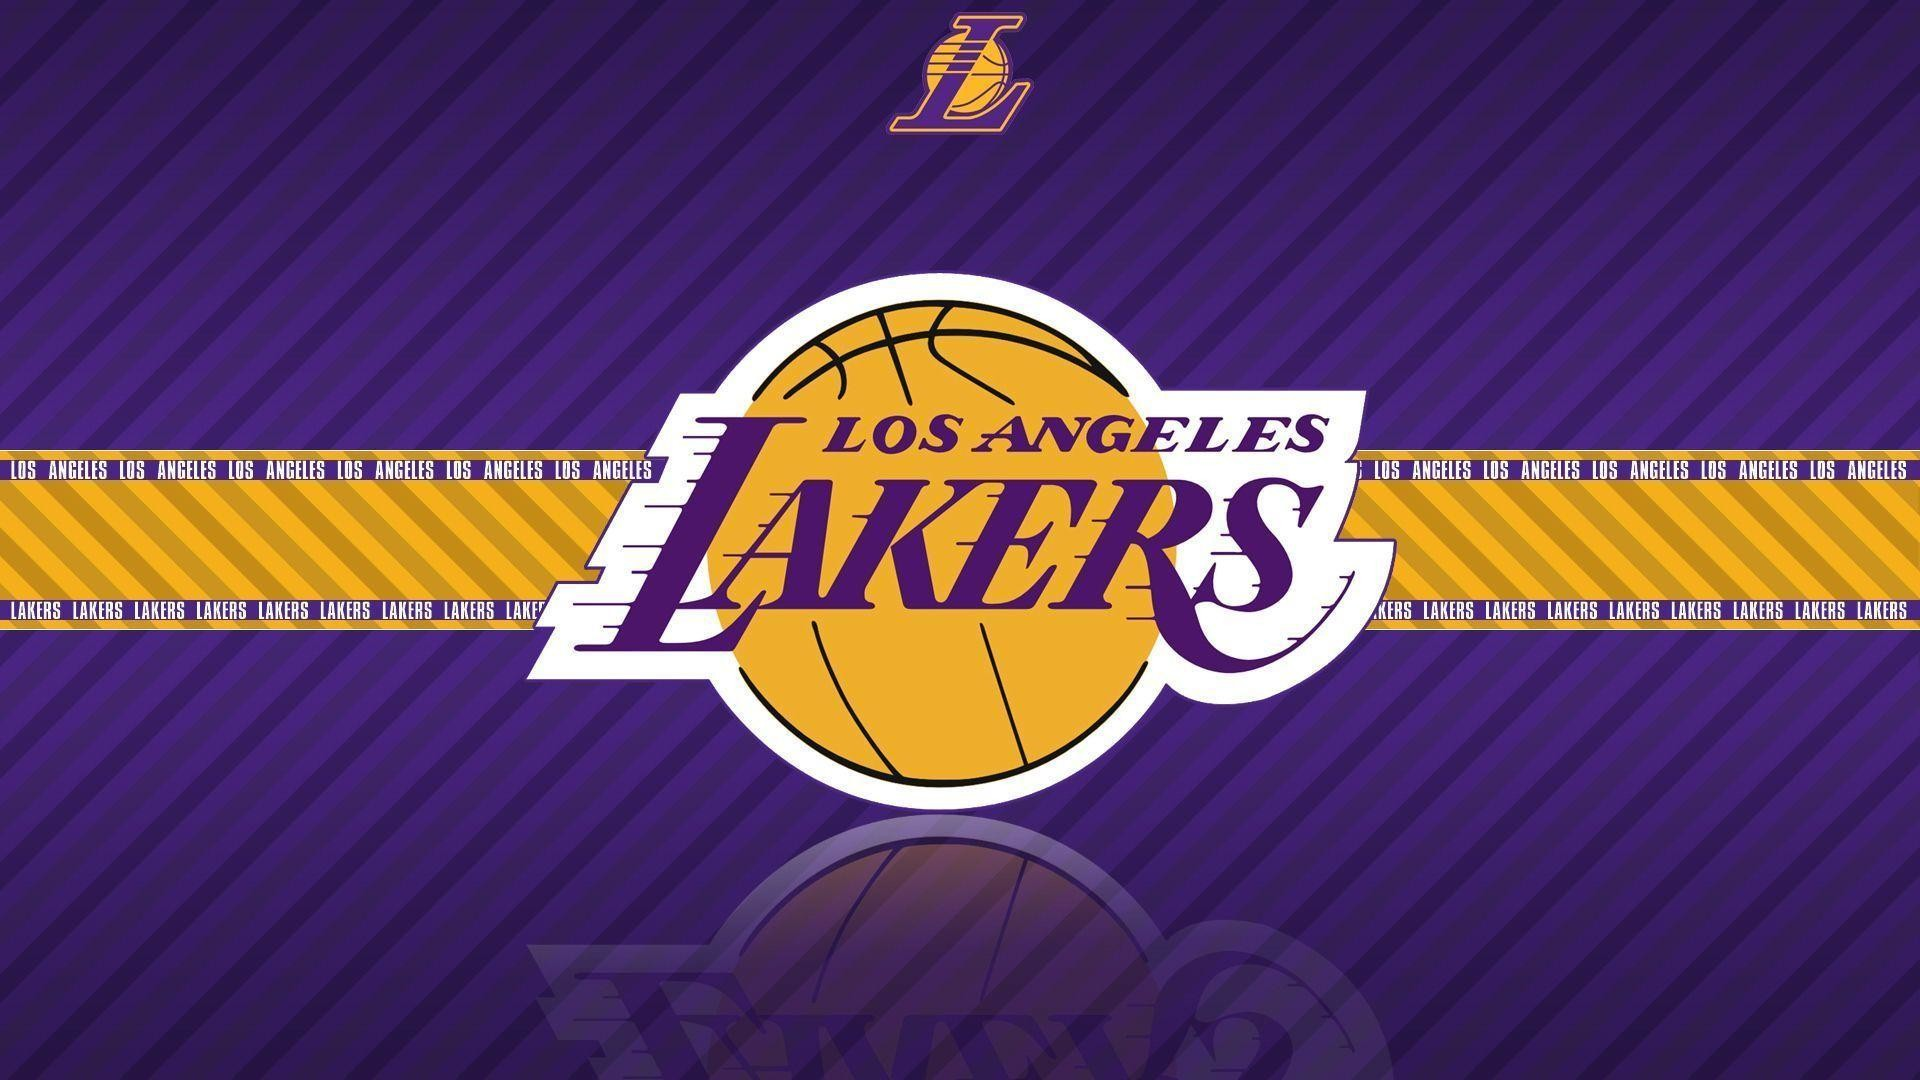 1920x1080 Nba Logo Wallpapers - Wallpaper Cave